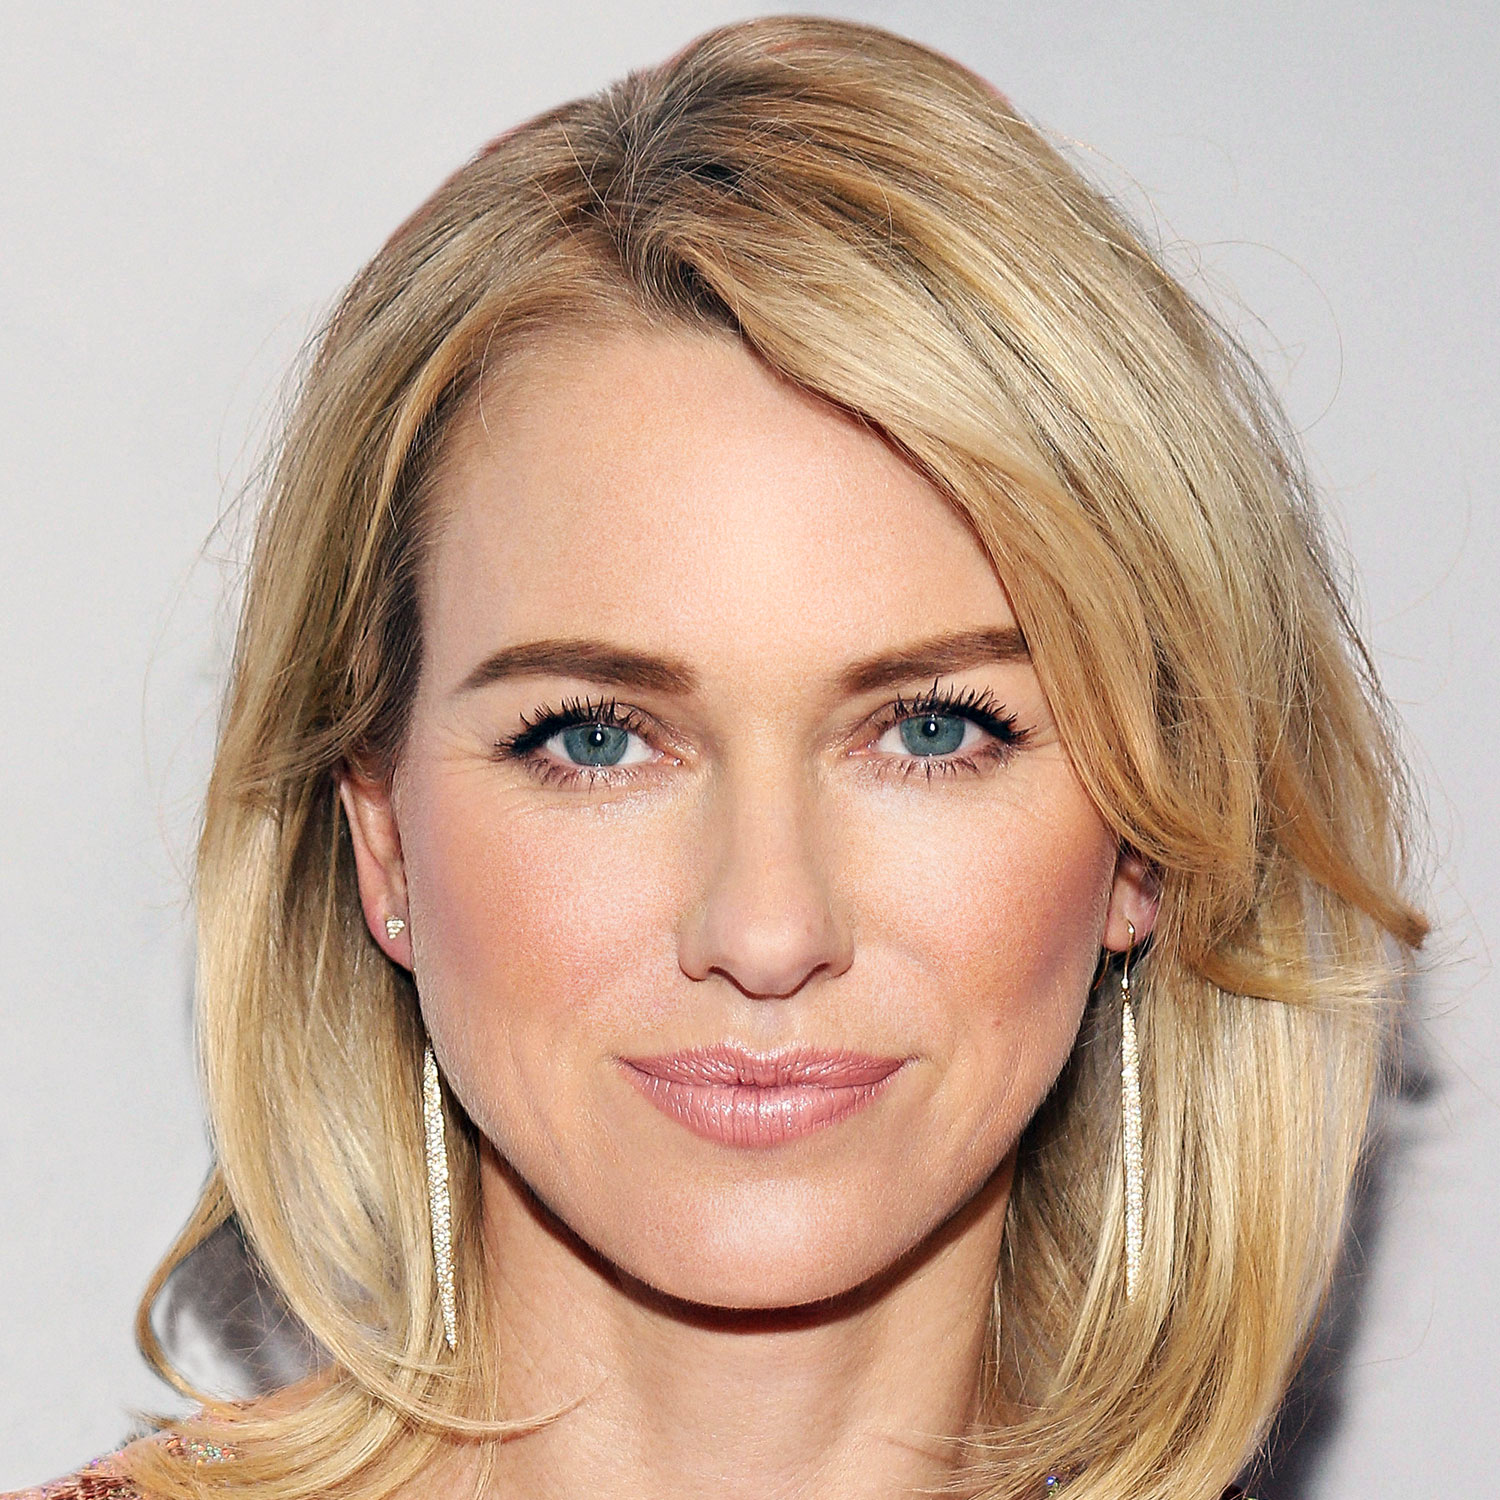 5498f2c13be60_-_l-2014-fab-at-every-age-beauty-naomi-watts-40s-qkwz5j-promo